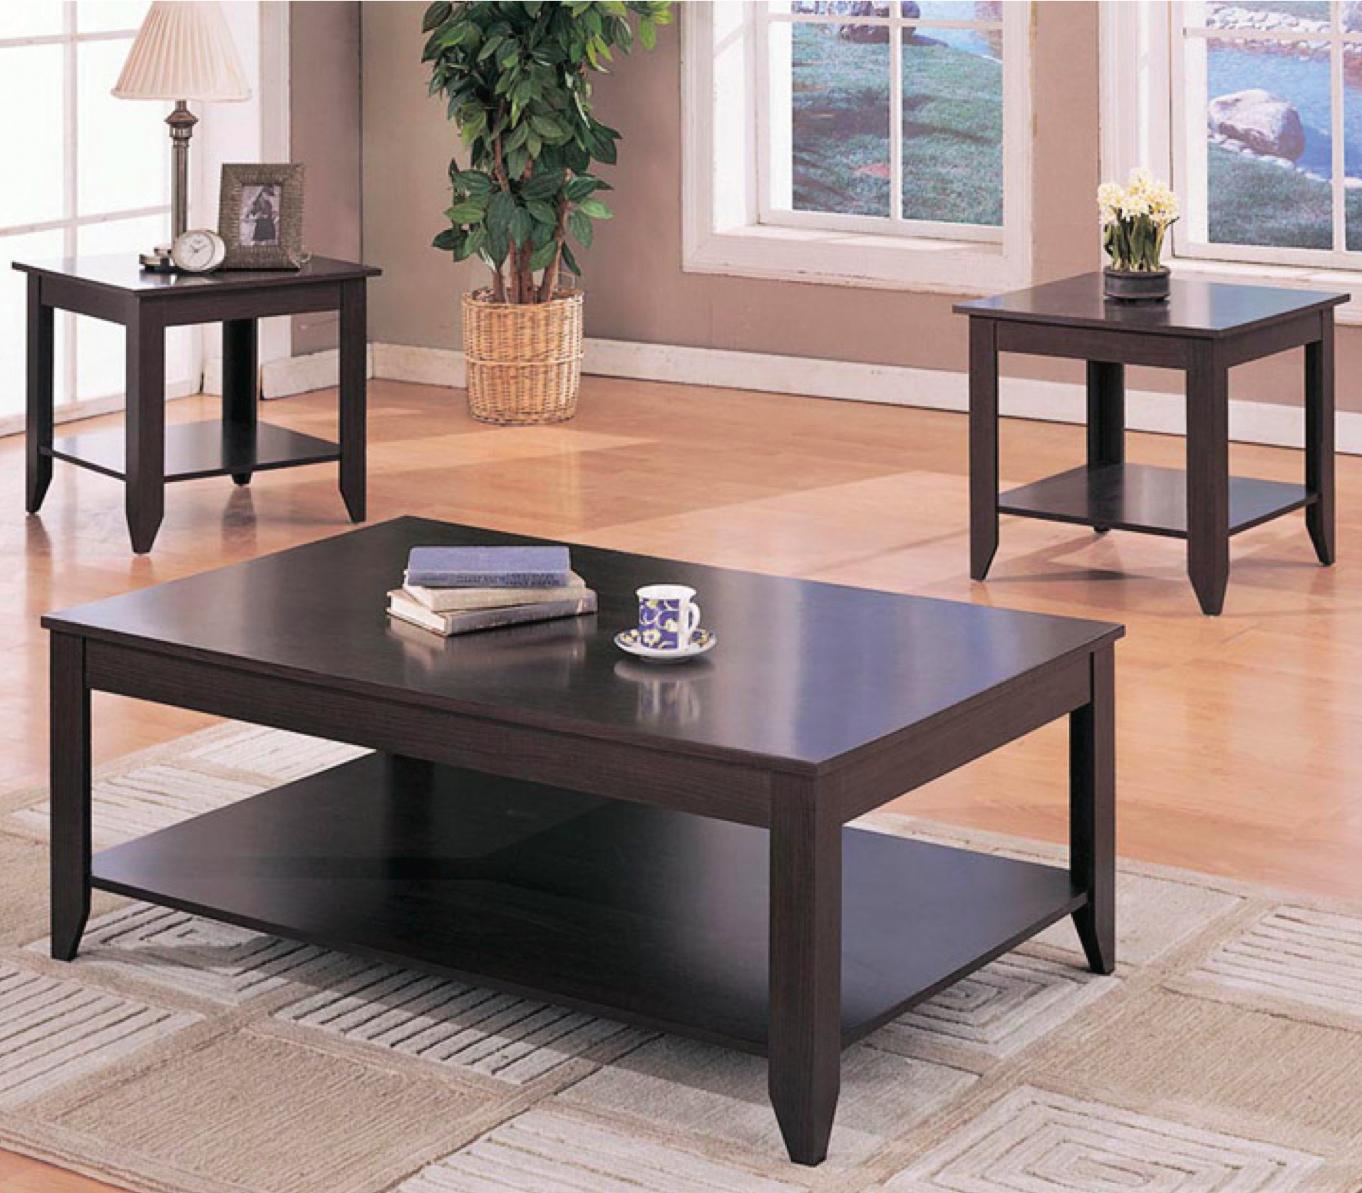 3 piece table set for living room linoleum flooring in coaster occasional sets 700285 contemporary